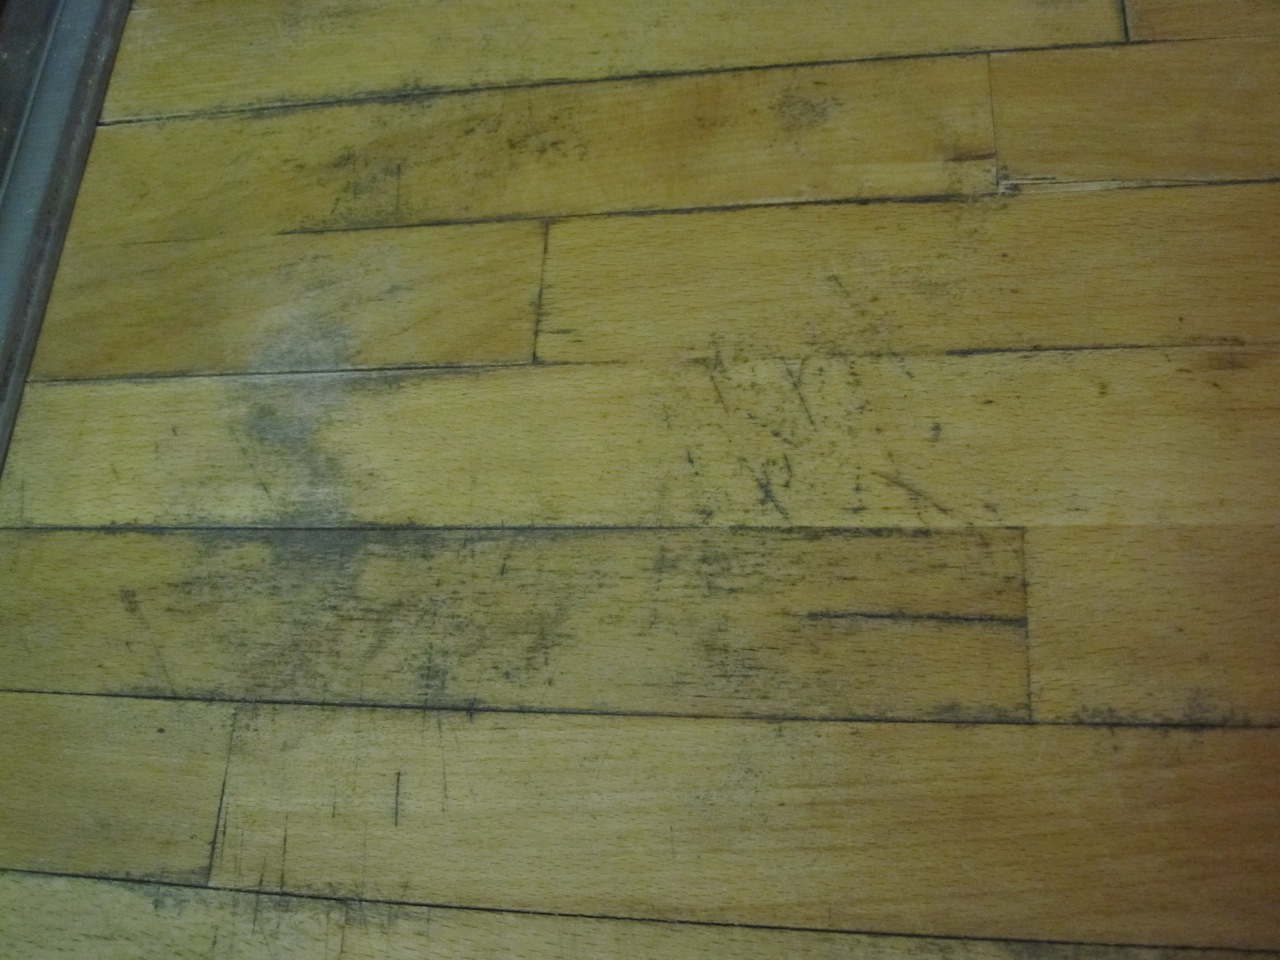 kitchen cabinet software waste basket 7 ways to remove black mold on wood - the basic woodworking